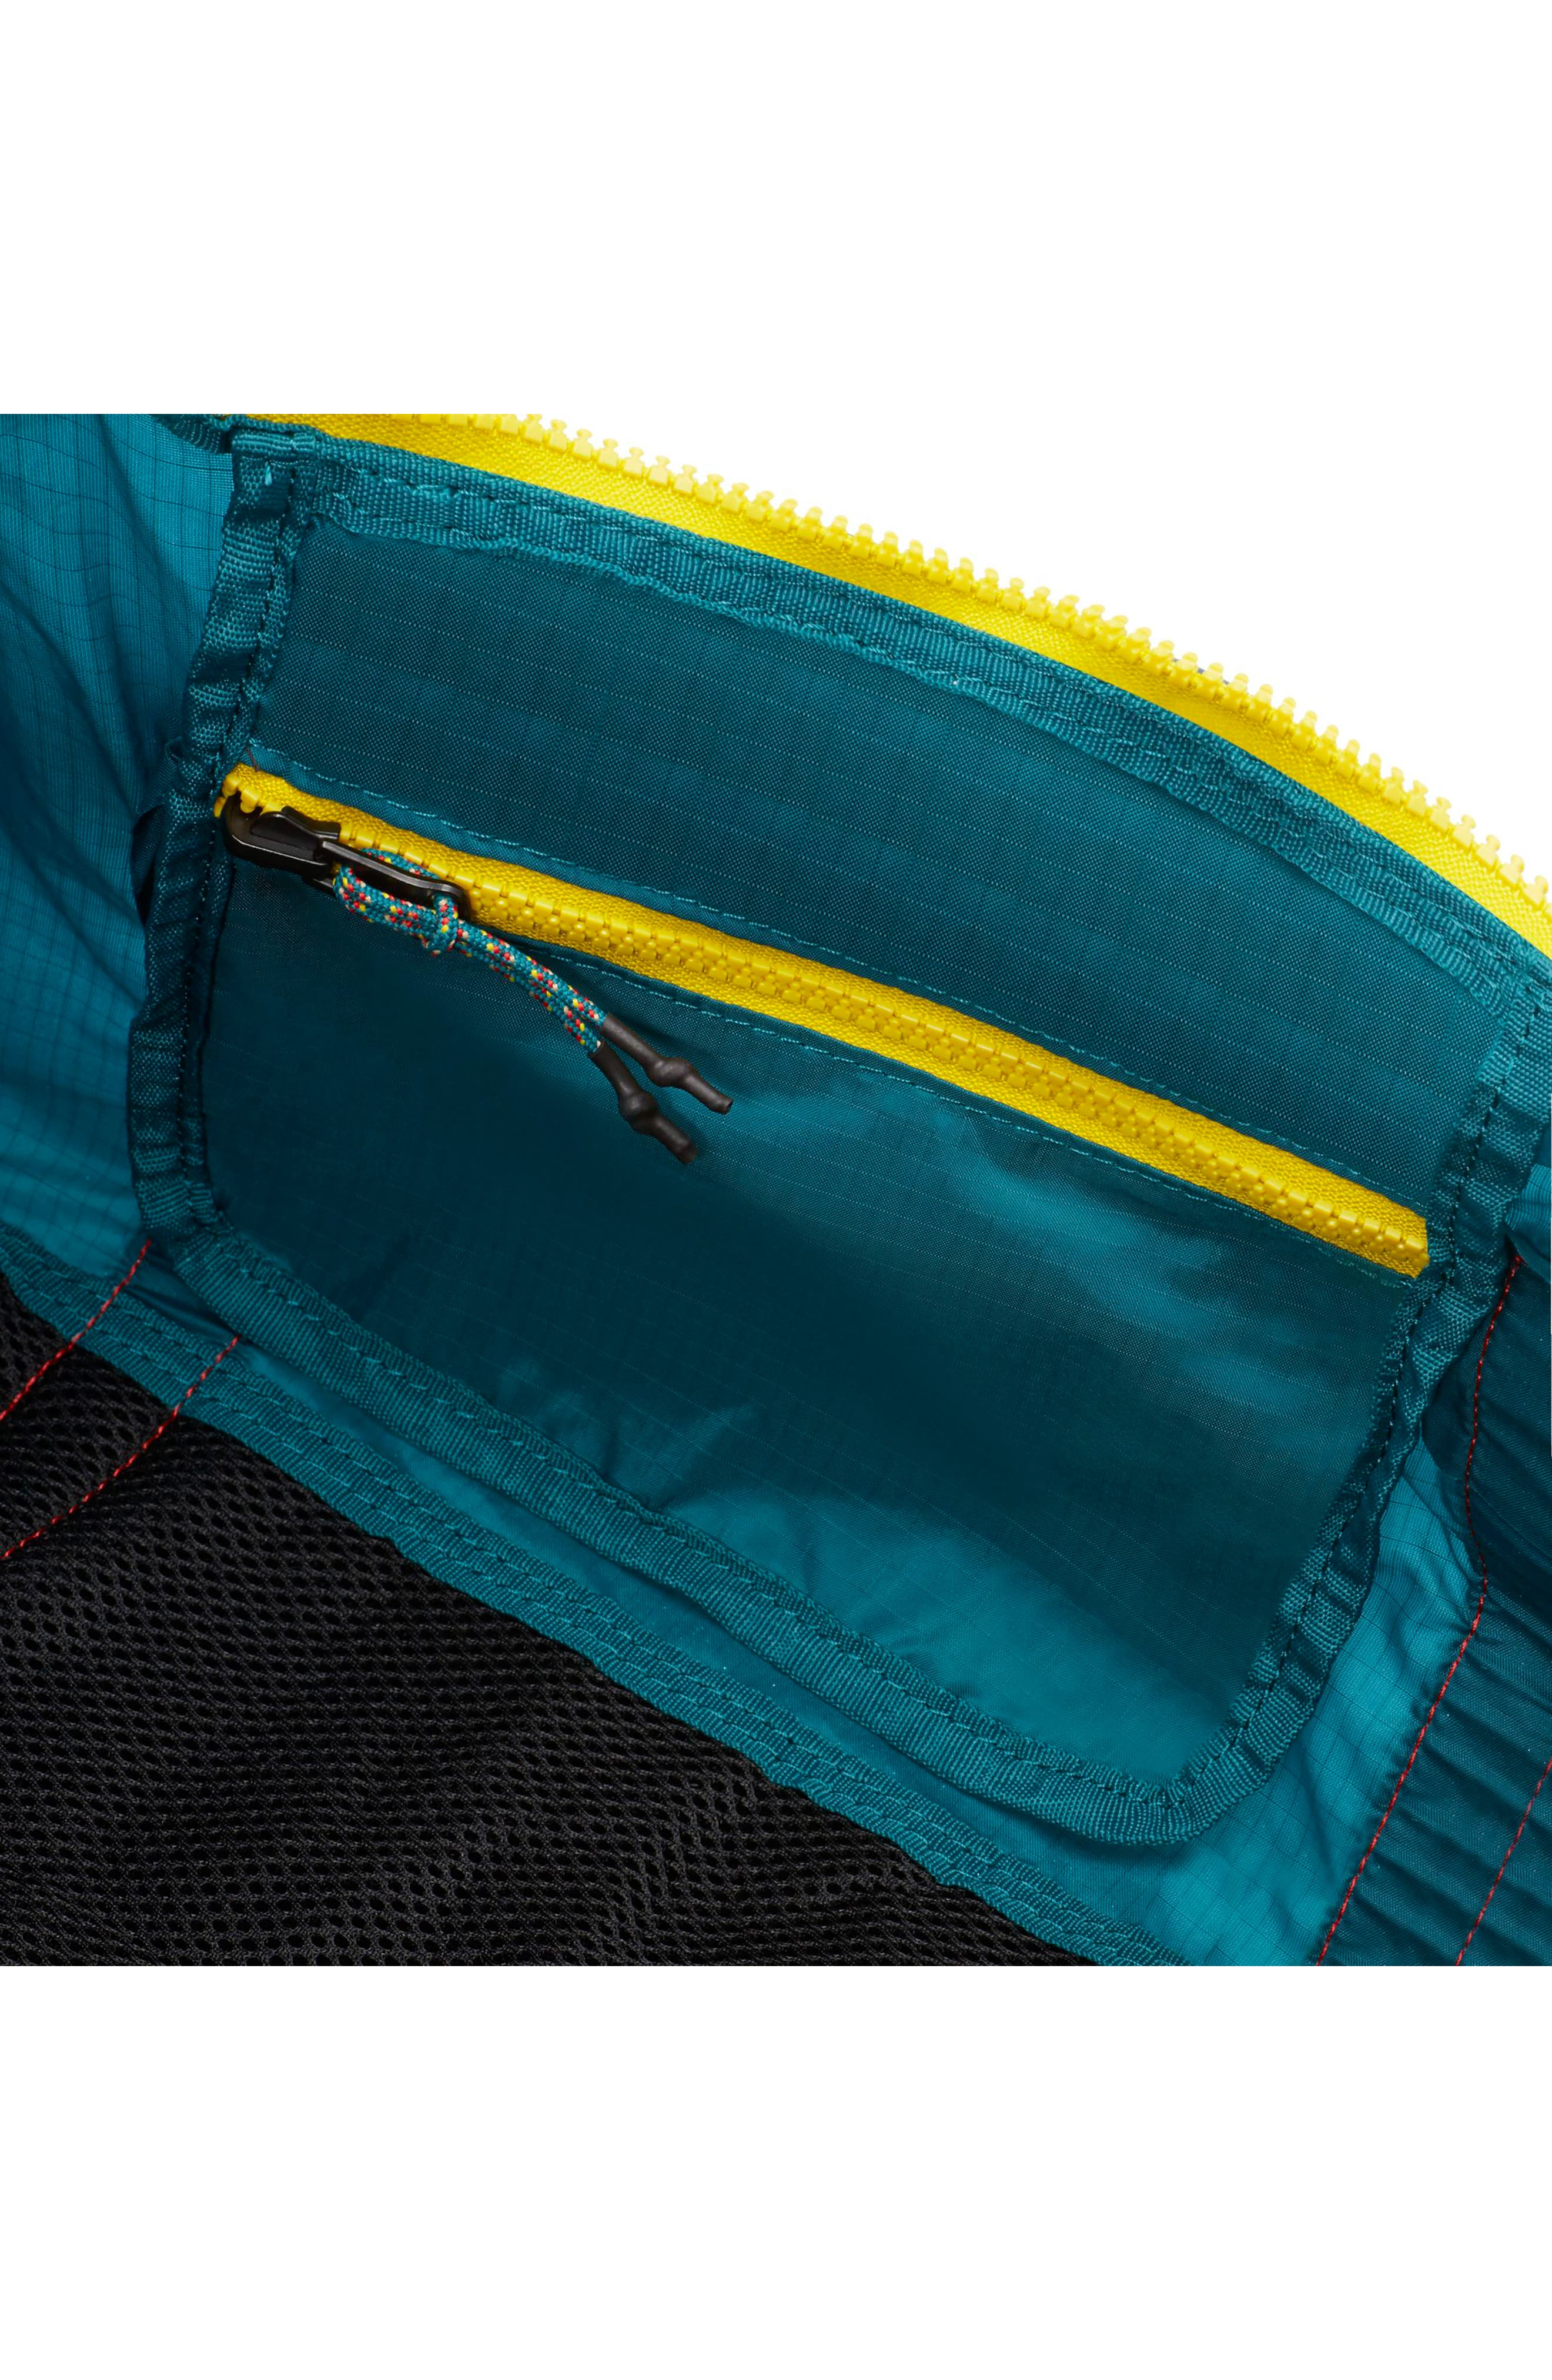 Packable Duffel Bag,                             Alternate thumbnail 4, color,                             GEODE TEAL/ HABANERO RED